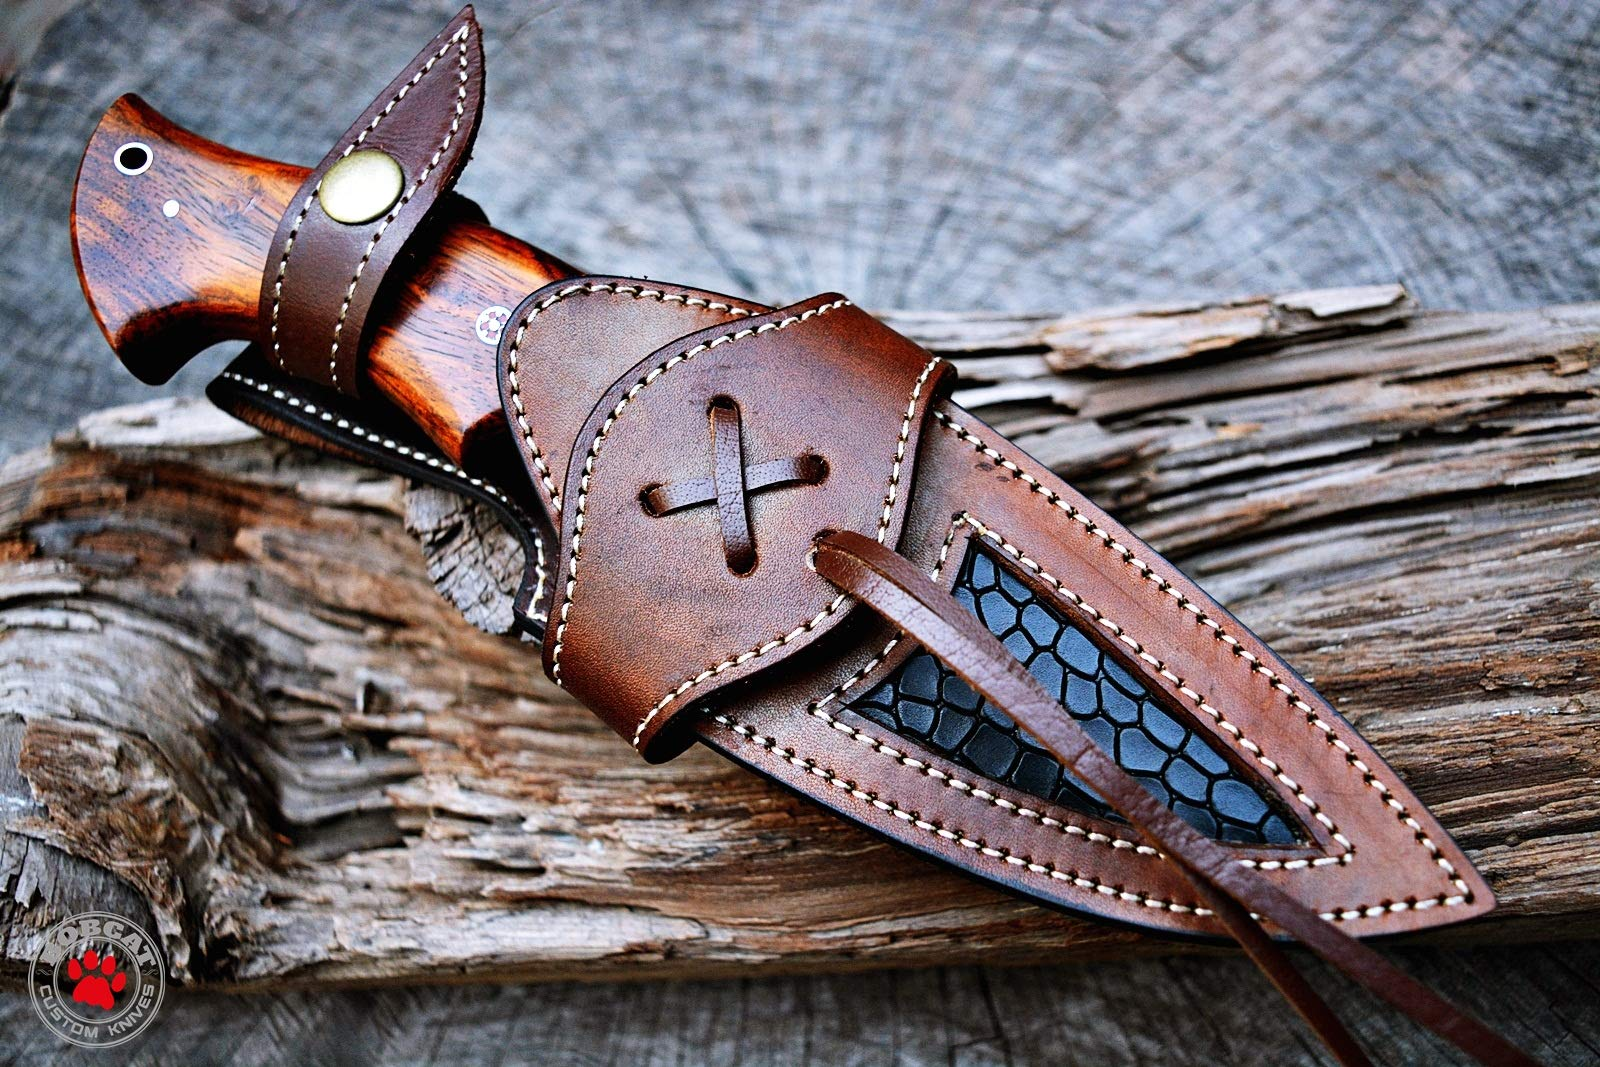 Custom Handmade Hunting Knife Bowie Knife Damascus Steel Survival Knife EDC 10'' Overall Walnut Wood with Sheath by Bobcat Knives (Image #7)